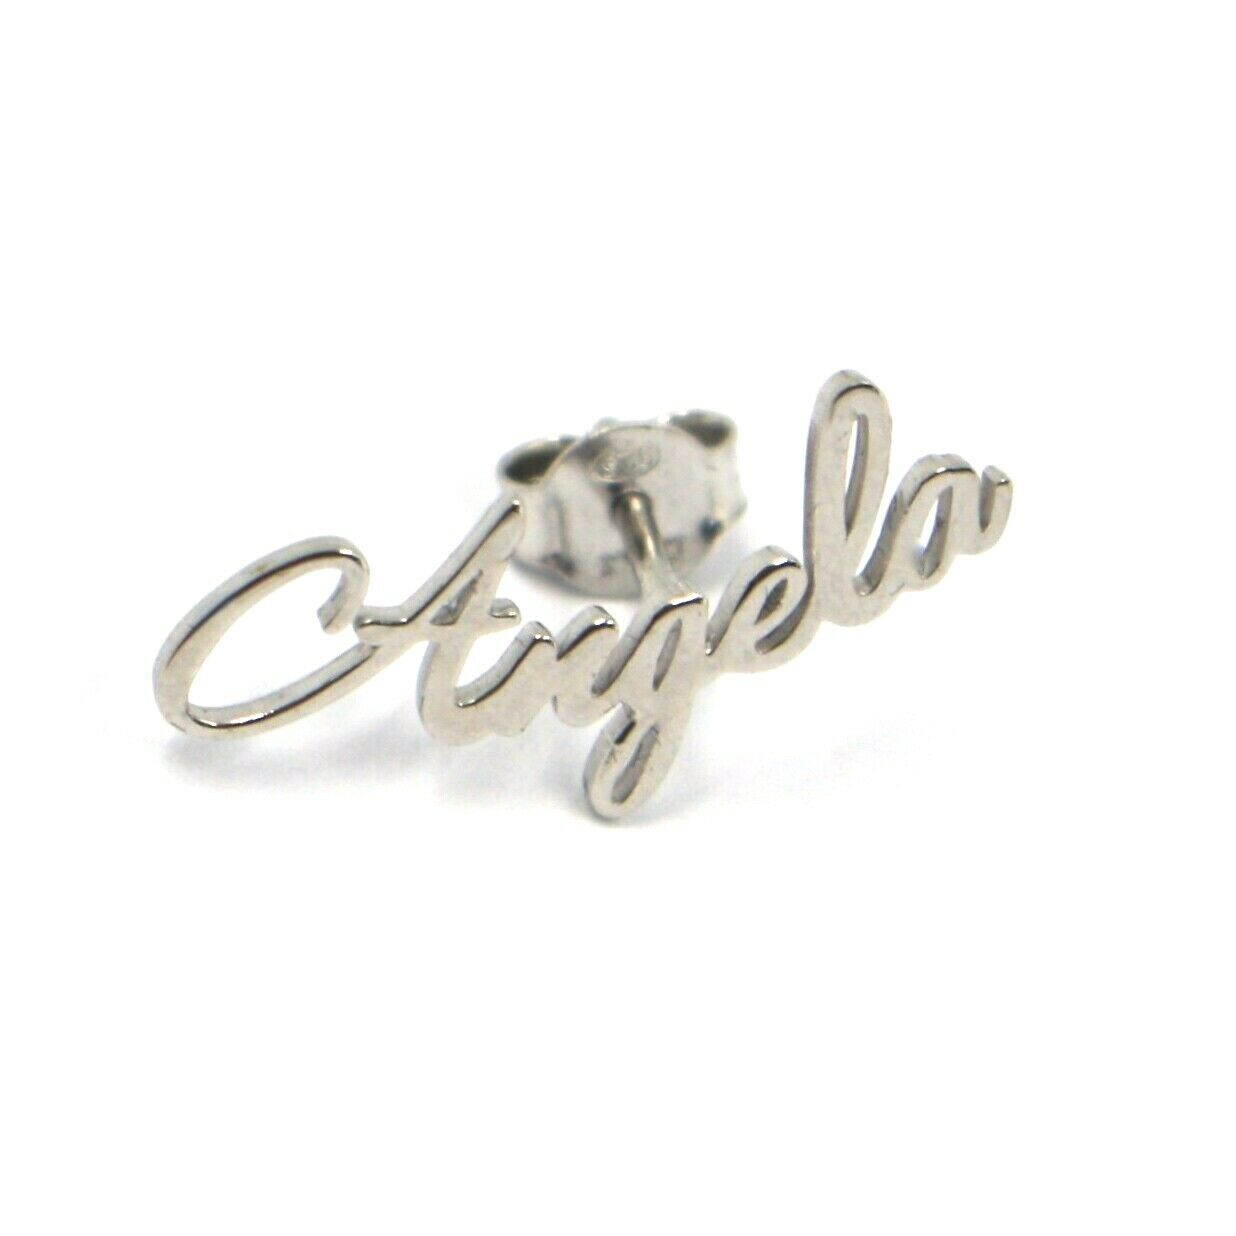 925 STERLING SILVER EARRINGS, WRITTEN NAME ANGELA, MADE IN ITALY